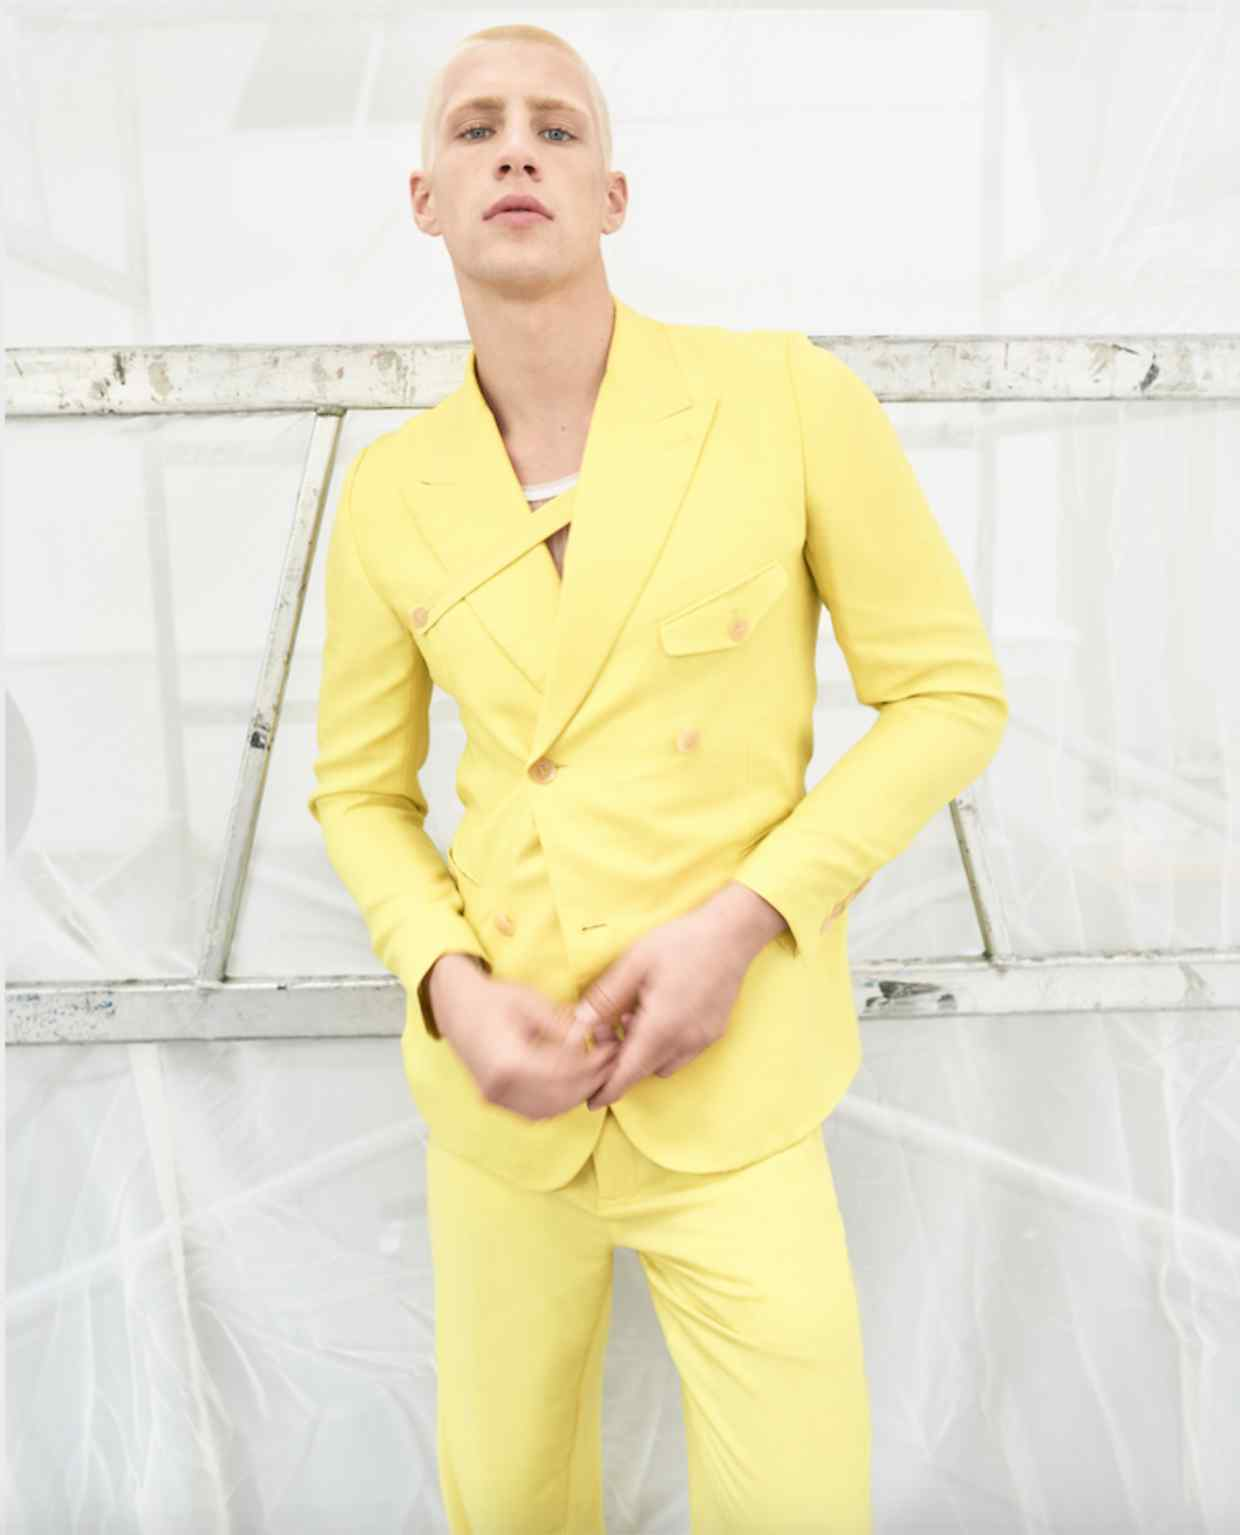 Dior cashmere twill jacket, £3,400, matching trousers, £1,700, and technical jersey vest, £730 | Image: Mariano Vivanco